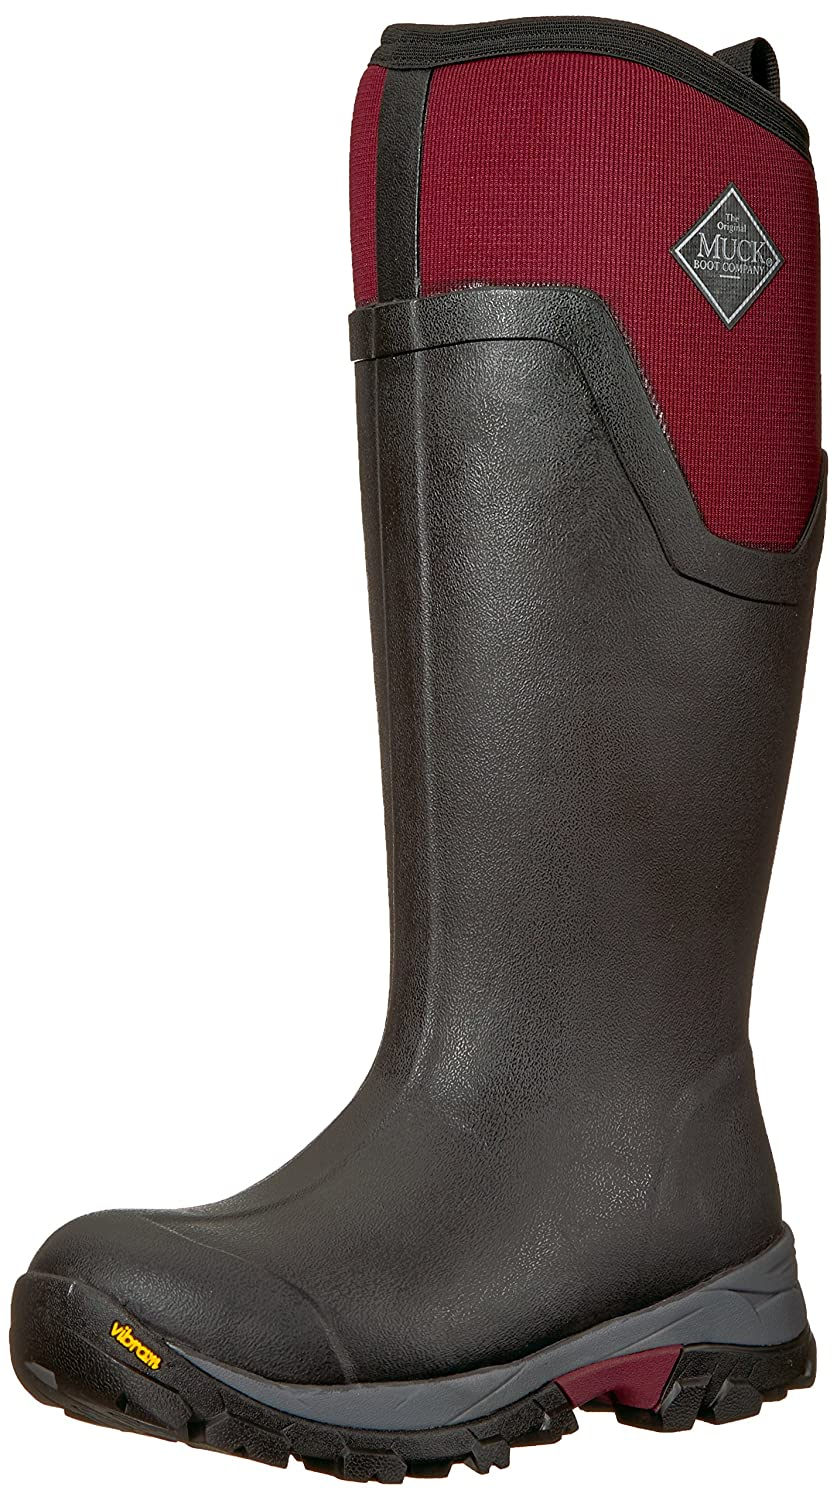 Muck Boot Arctic Ice Extreme Conditions Tall Rubber Women's Winter Boot with Arctic Grip Outsole Webyshops Women's Arctic Ice Tall-W